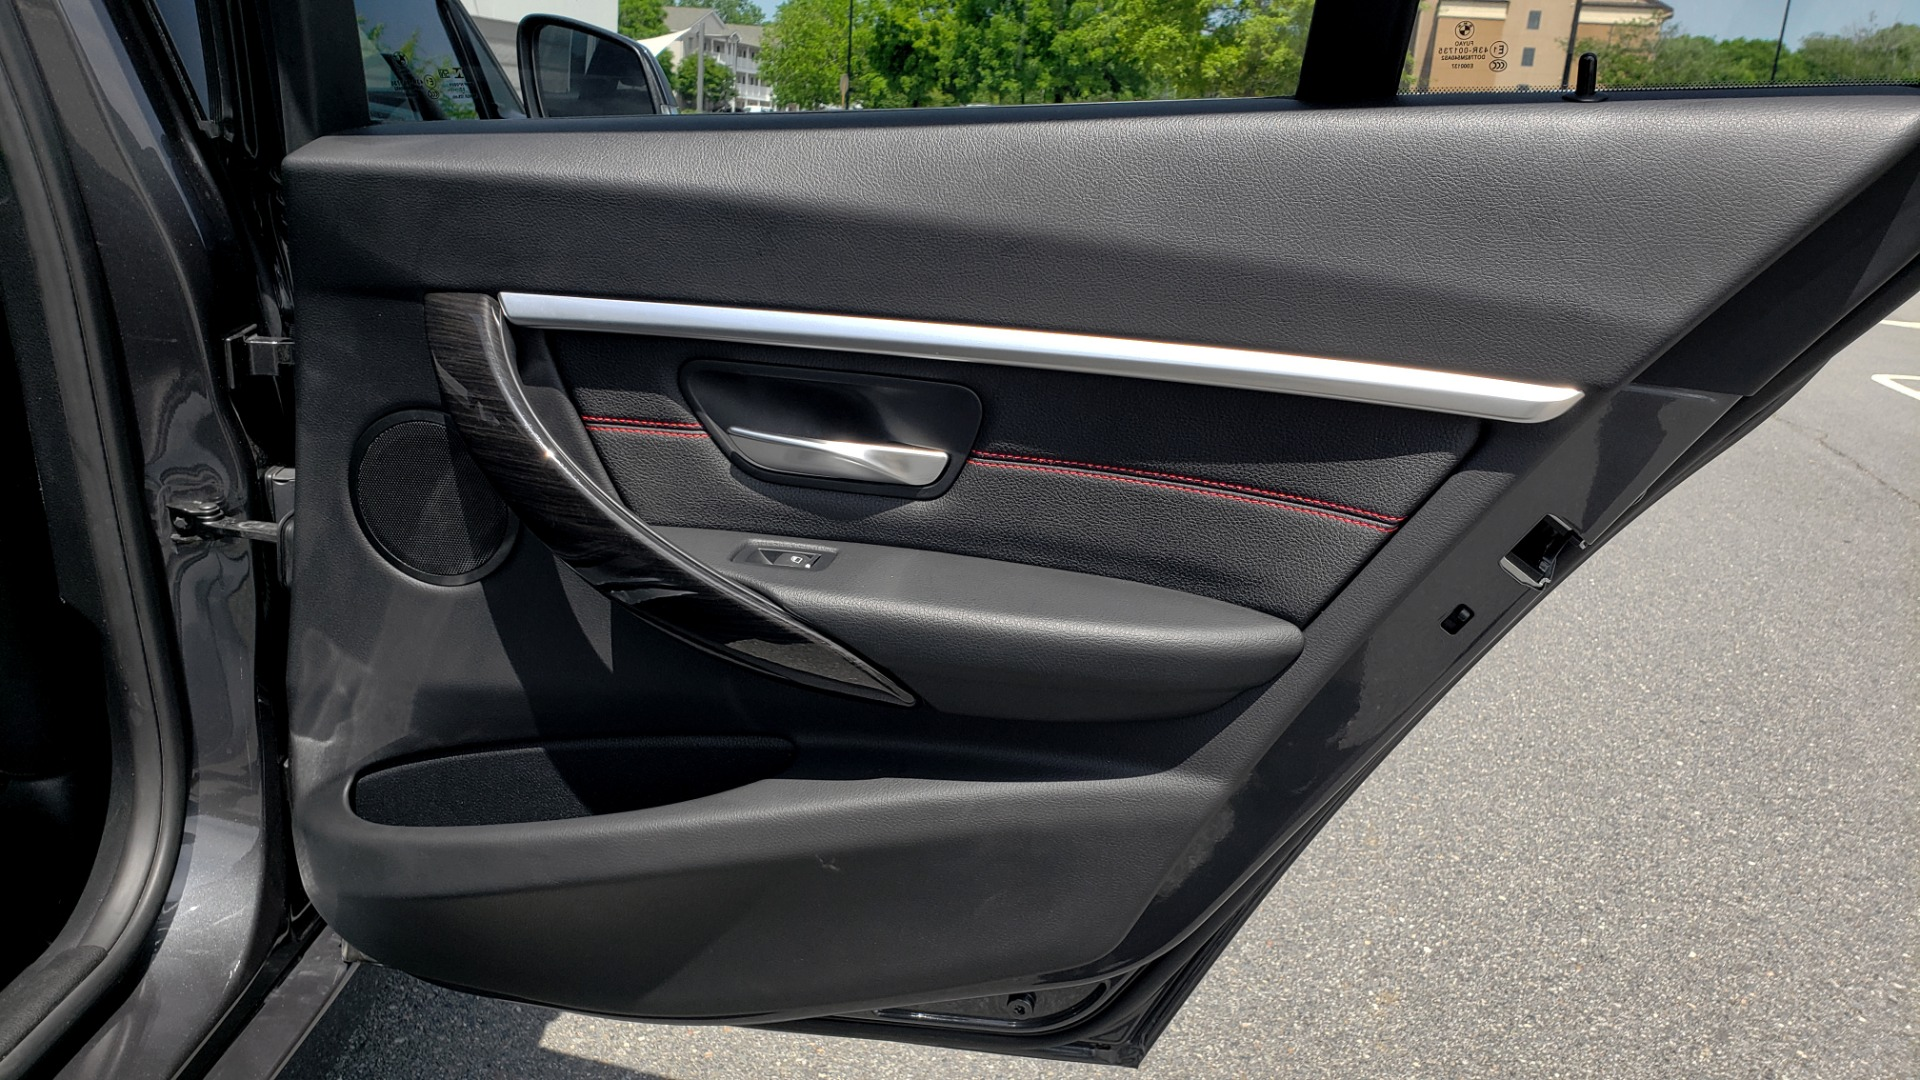 Used 2018 BMW 3 SERIES 330I XDRIVE / CONV PKG / SUNROOF / SPORT STS / HTD STS / REARVIEW for sale $28,495 at Formula Imports in Charlotte NC 28227 67